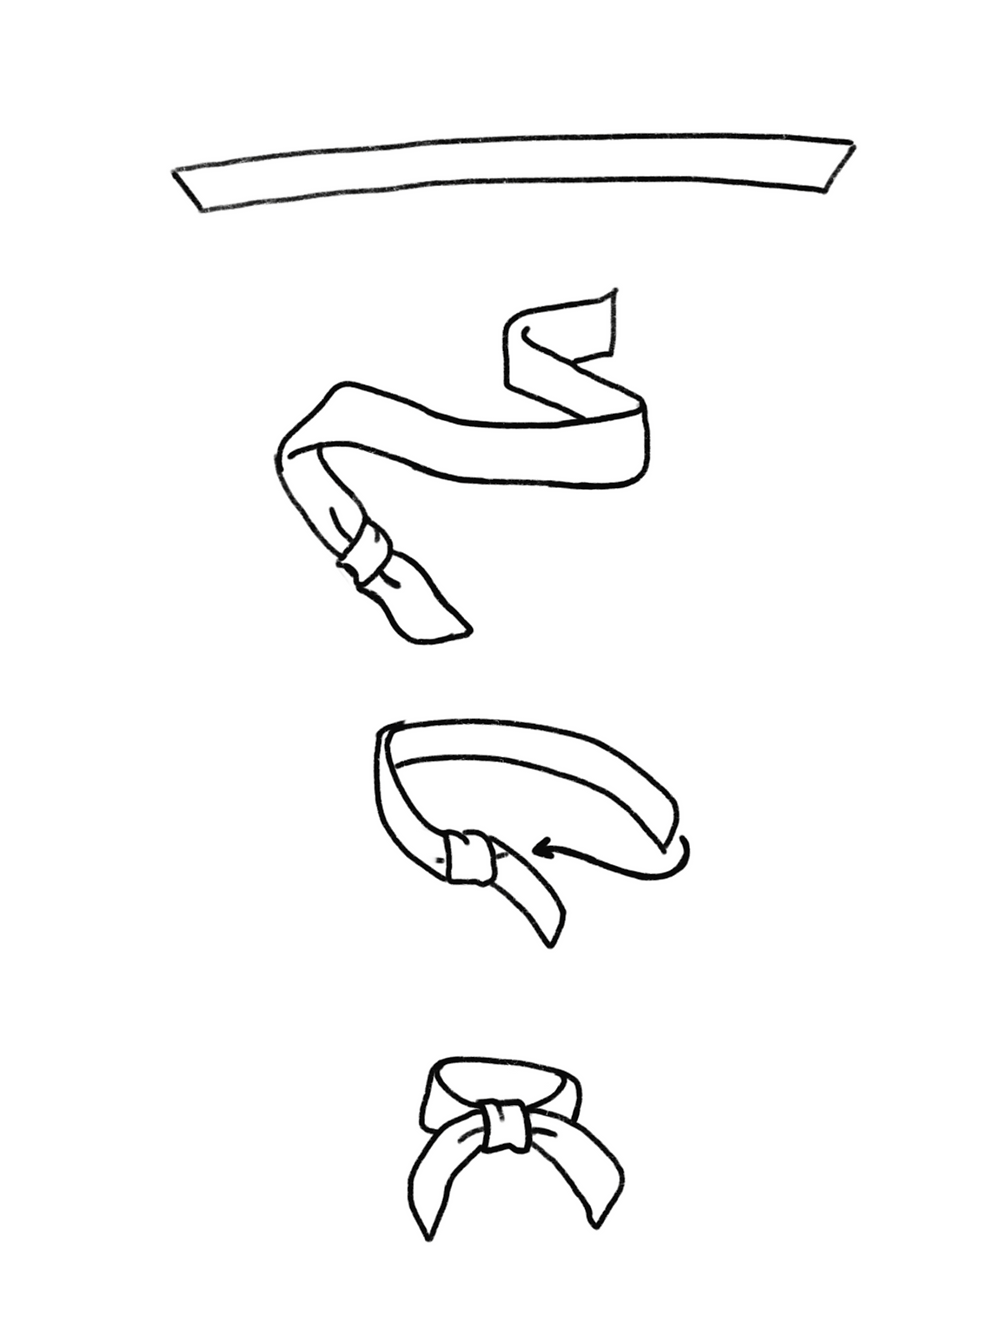 CARMENTA - drawing of scarf fake knot tutorial, Costa Rica design and art printed on fabric